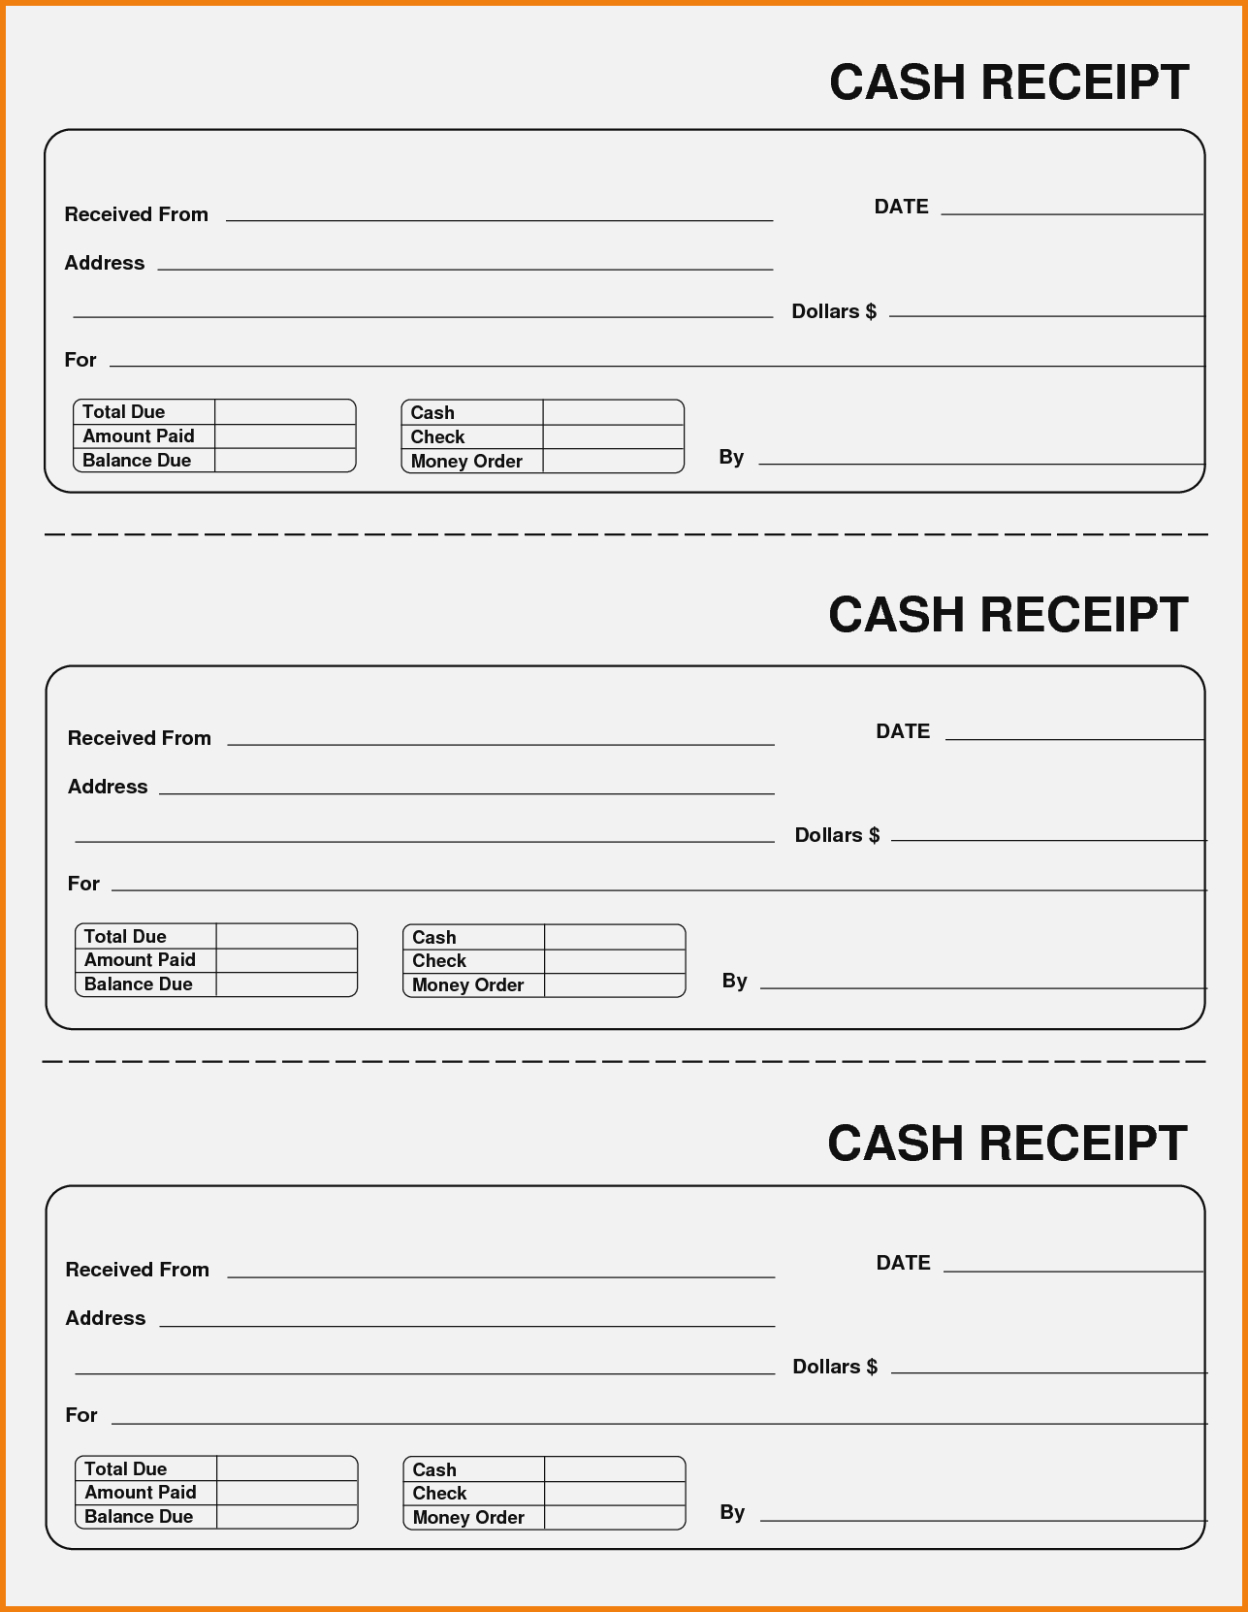 Daycare Receipt Form – Denmar.impulsar – The Invoice And Form Template - Free Printable Daycare Receipts